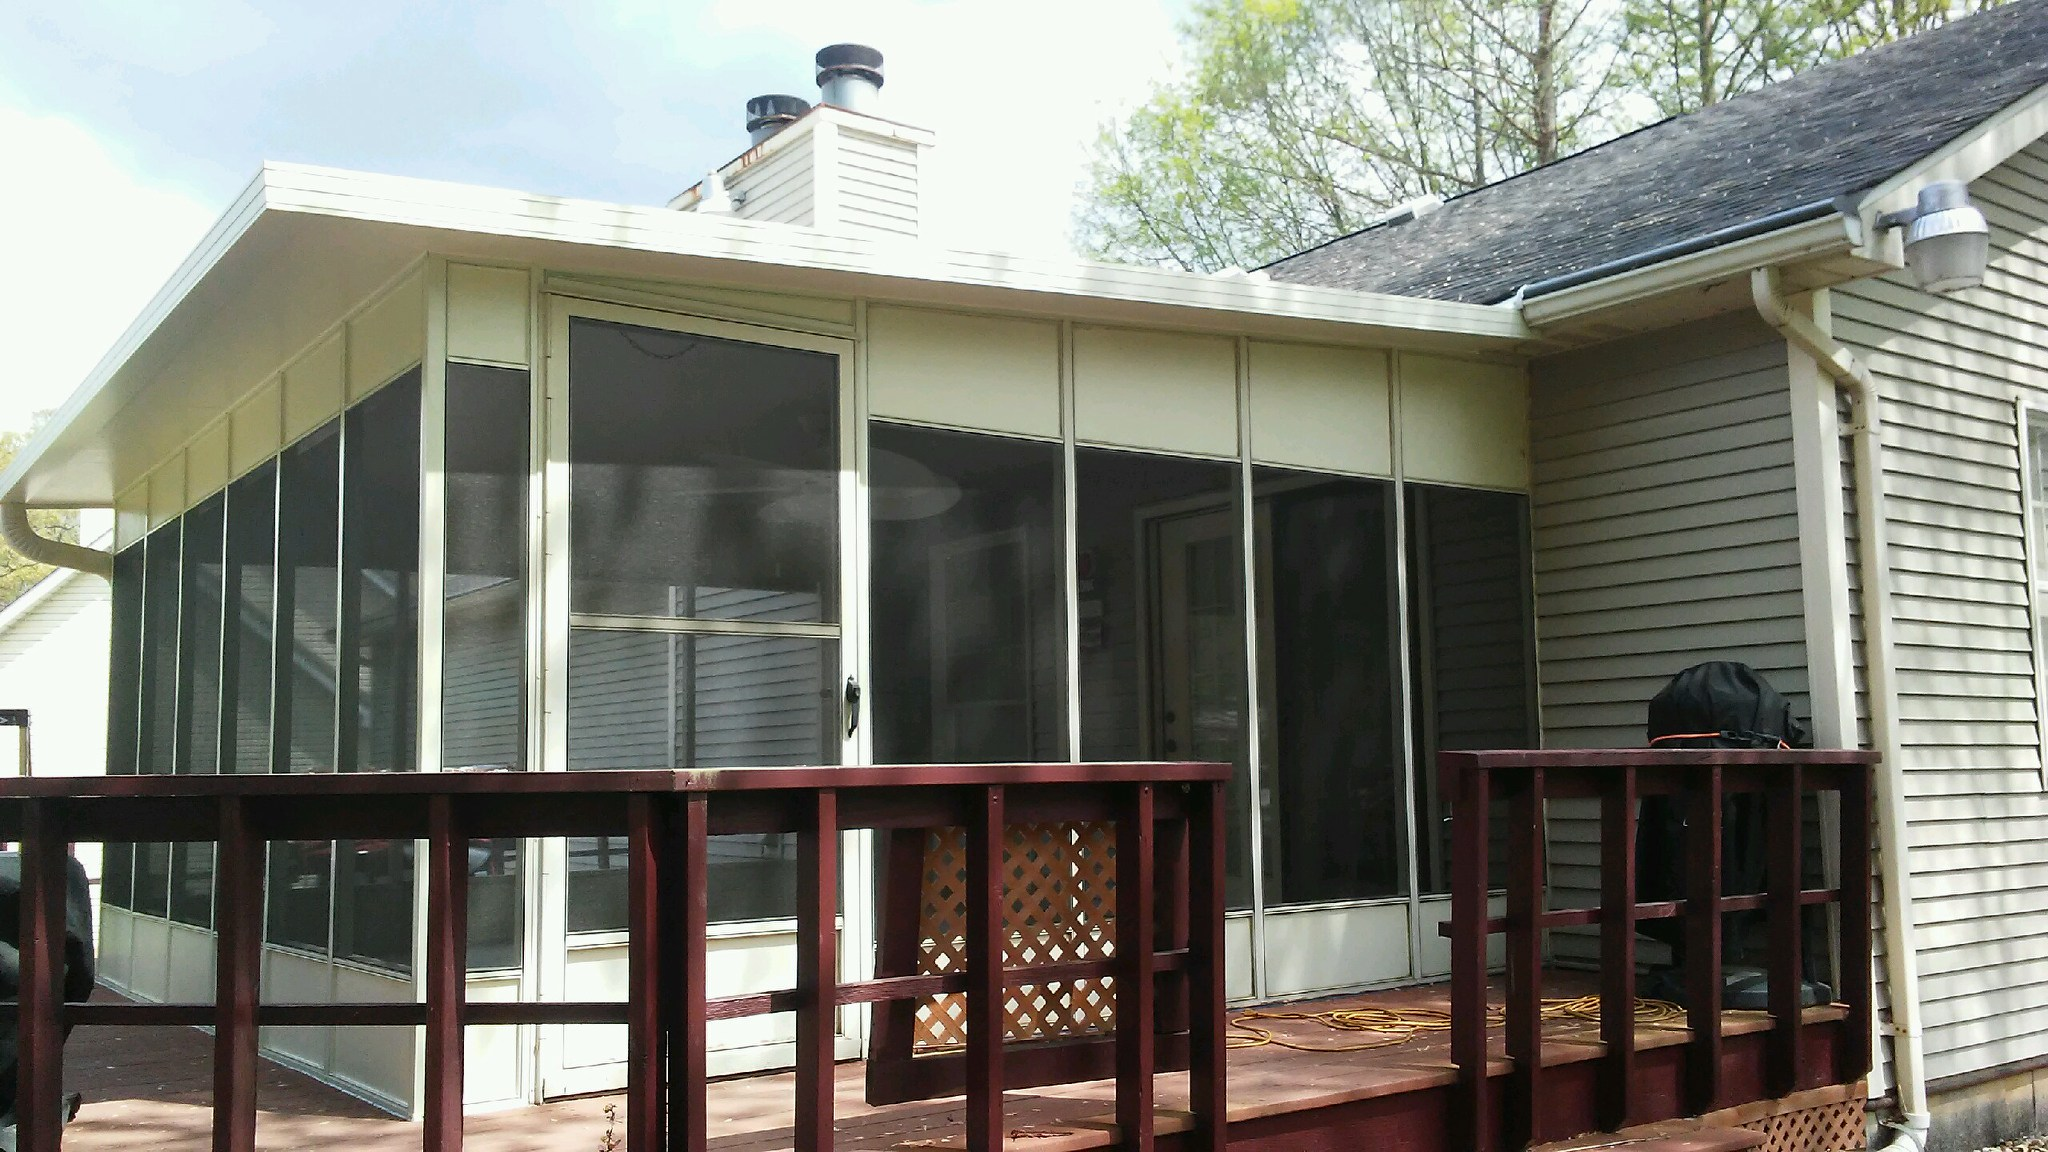 Screen room extended twice